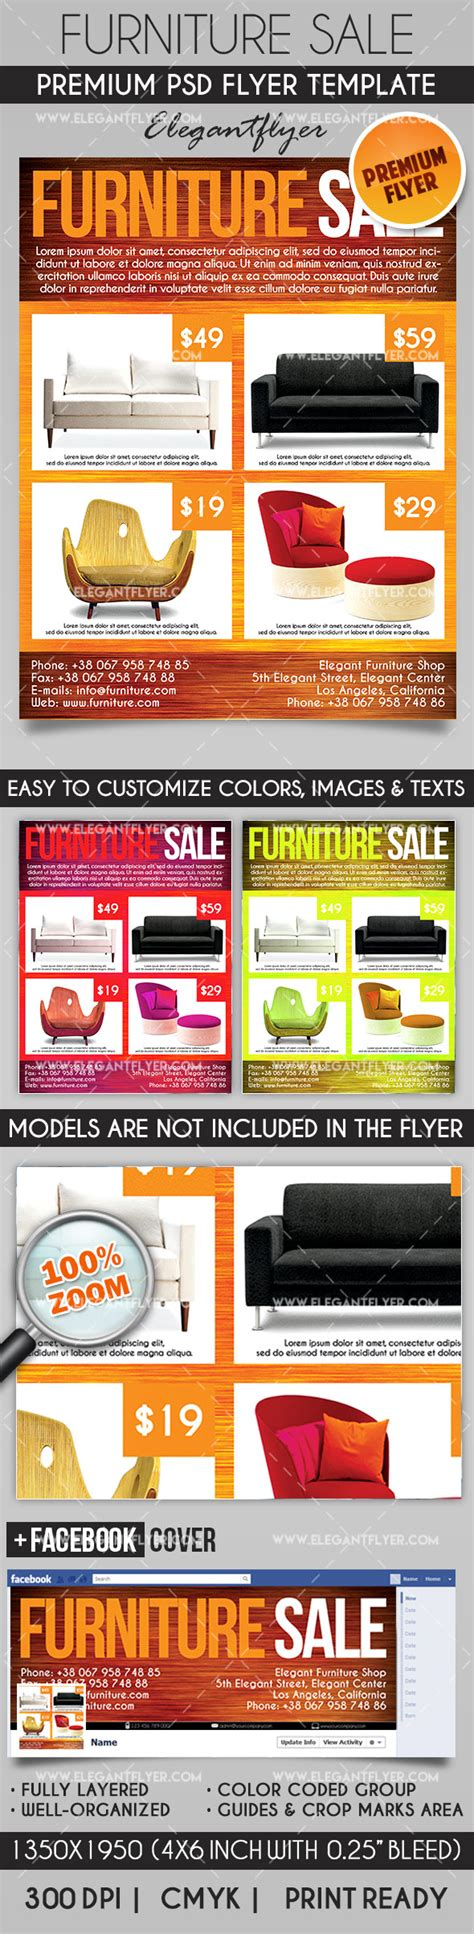 Furniture Flyer Template Free